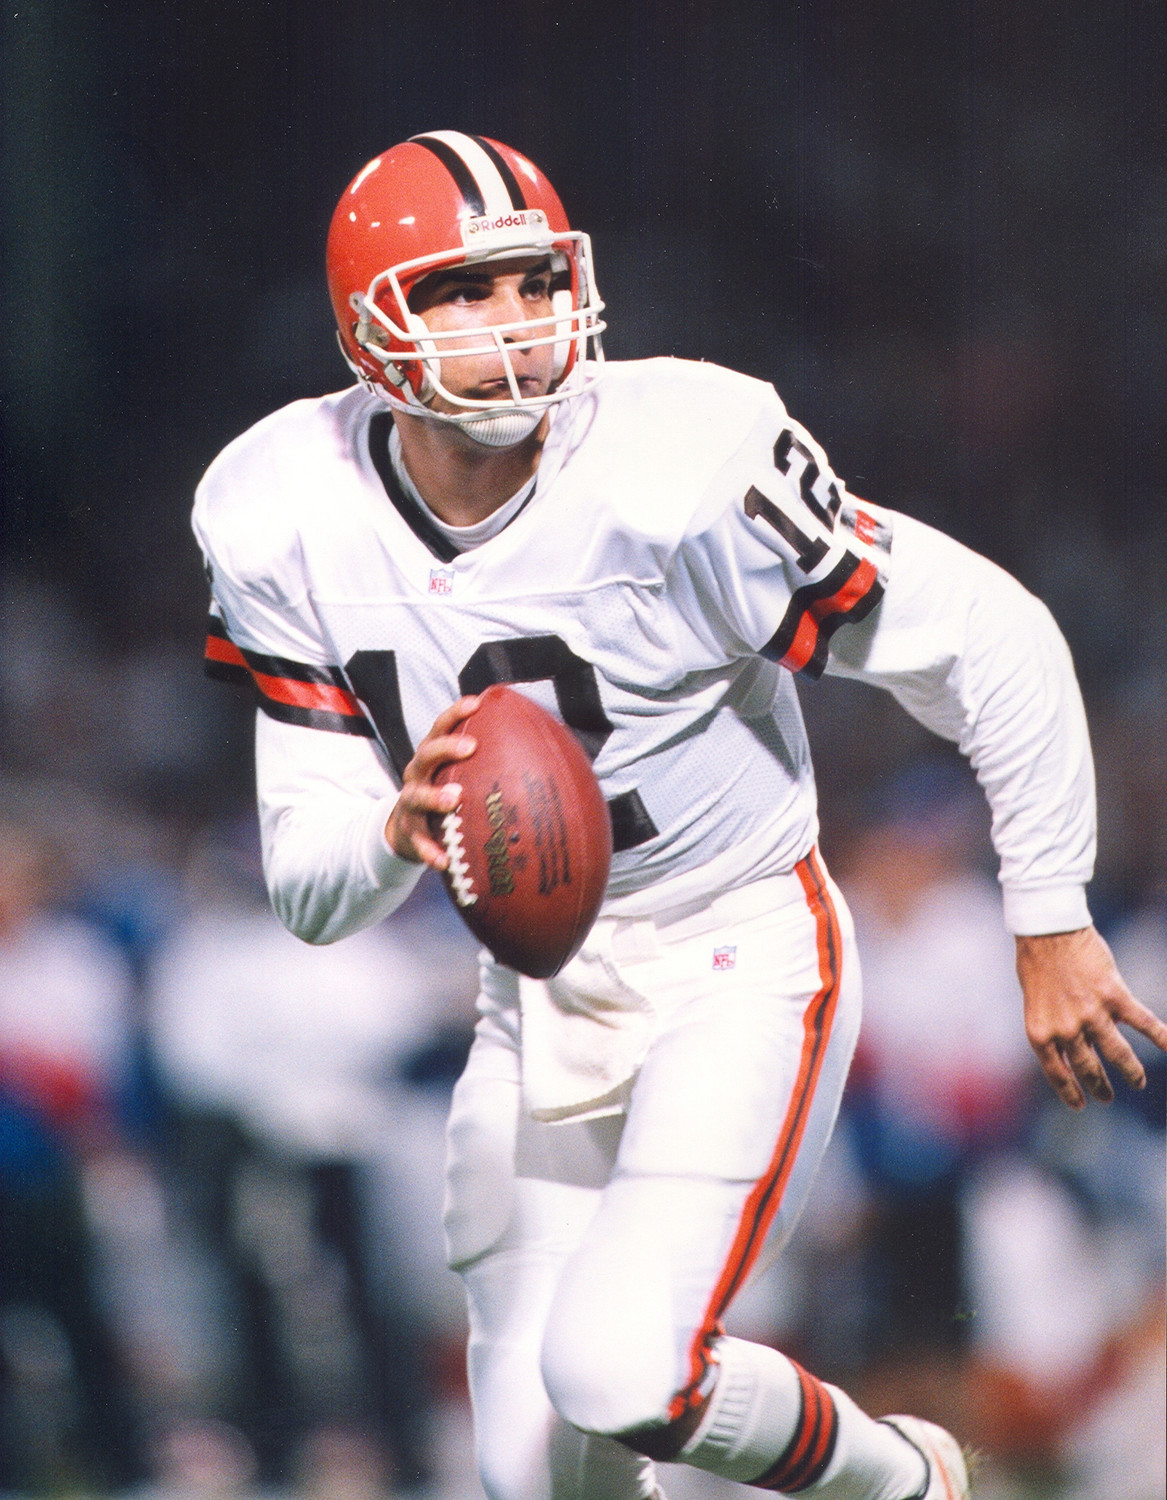 Sewanhaka High School 1981 graduate Vinny Testaverde is the only Heisman Trophy winner from Long Island and threw 275 touchdown passes in the NFL.